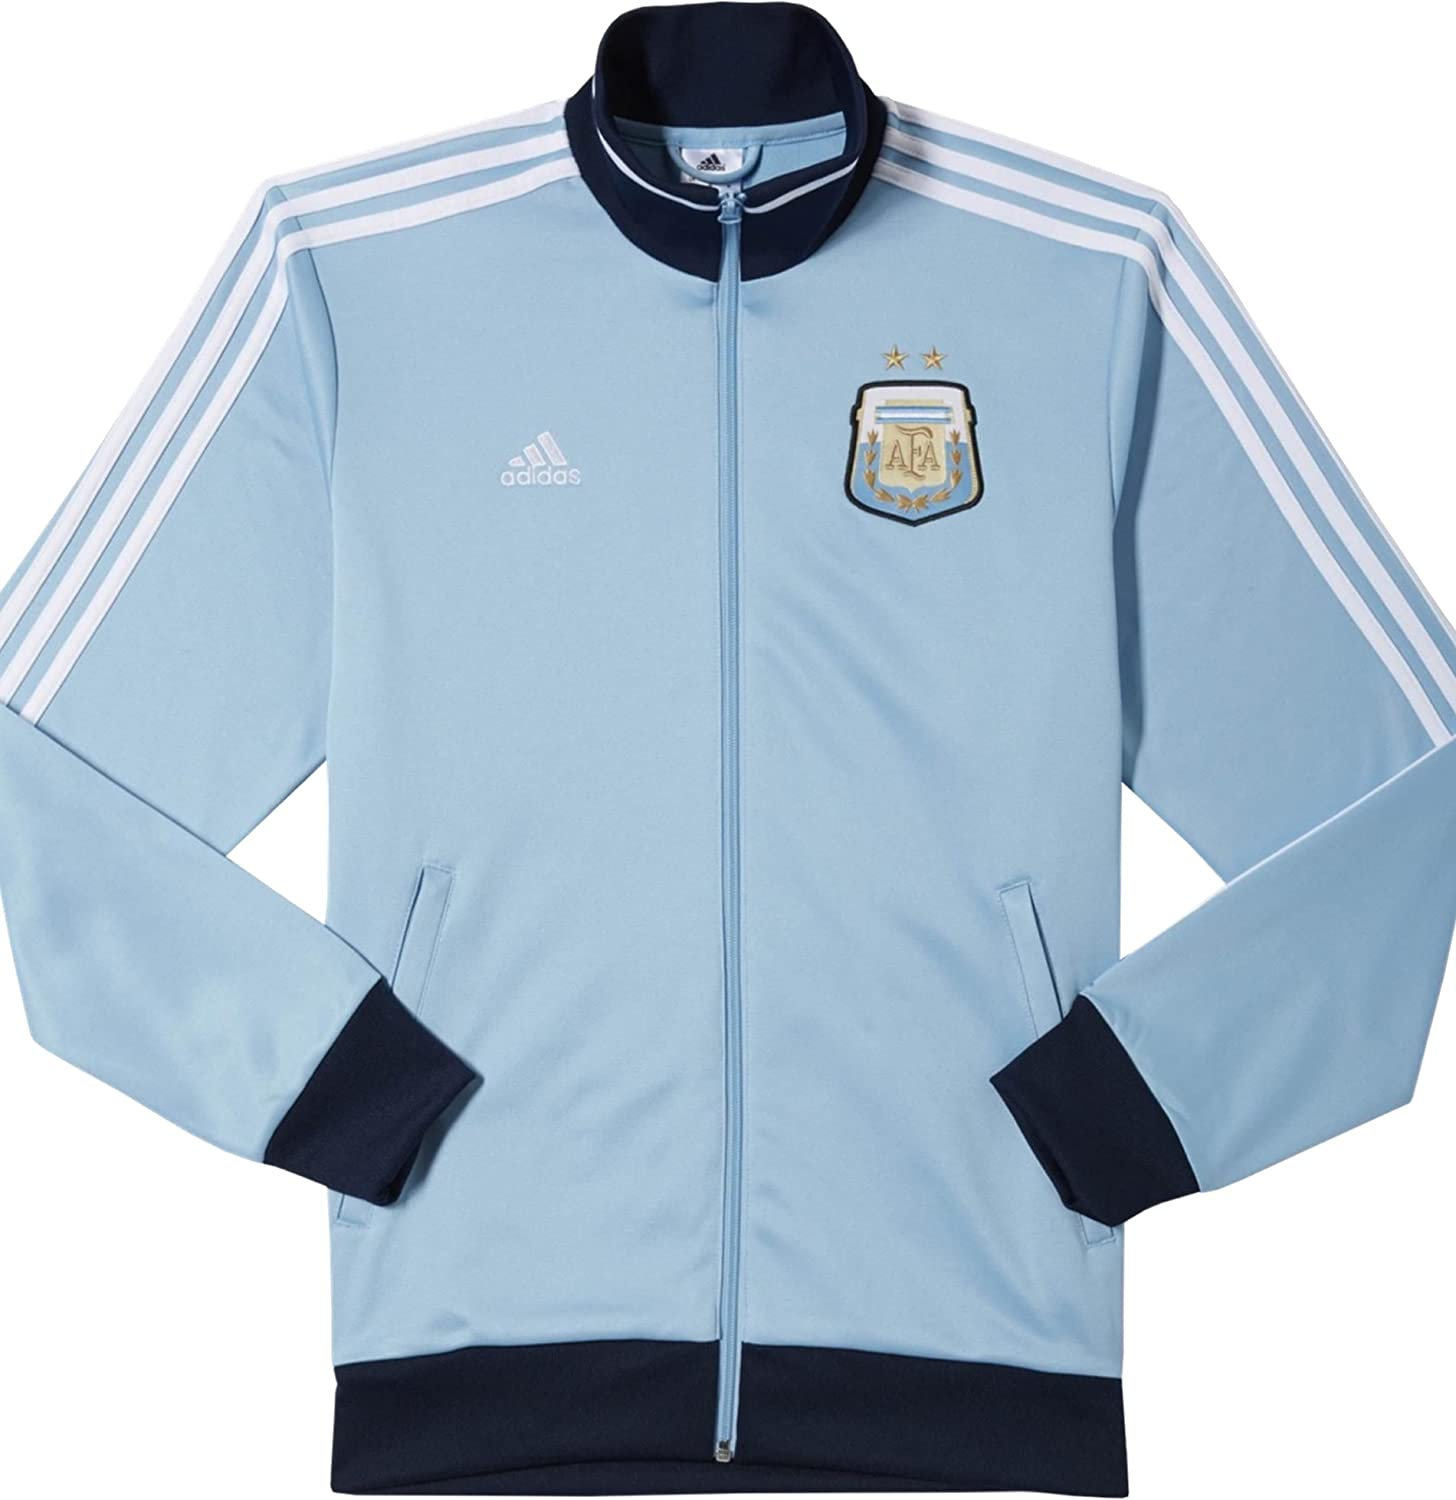 veste survetement adidas argentine